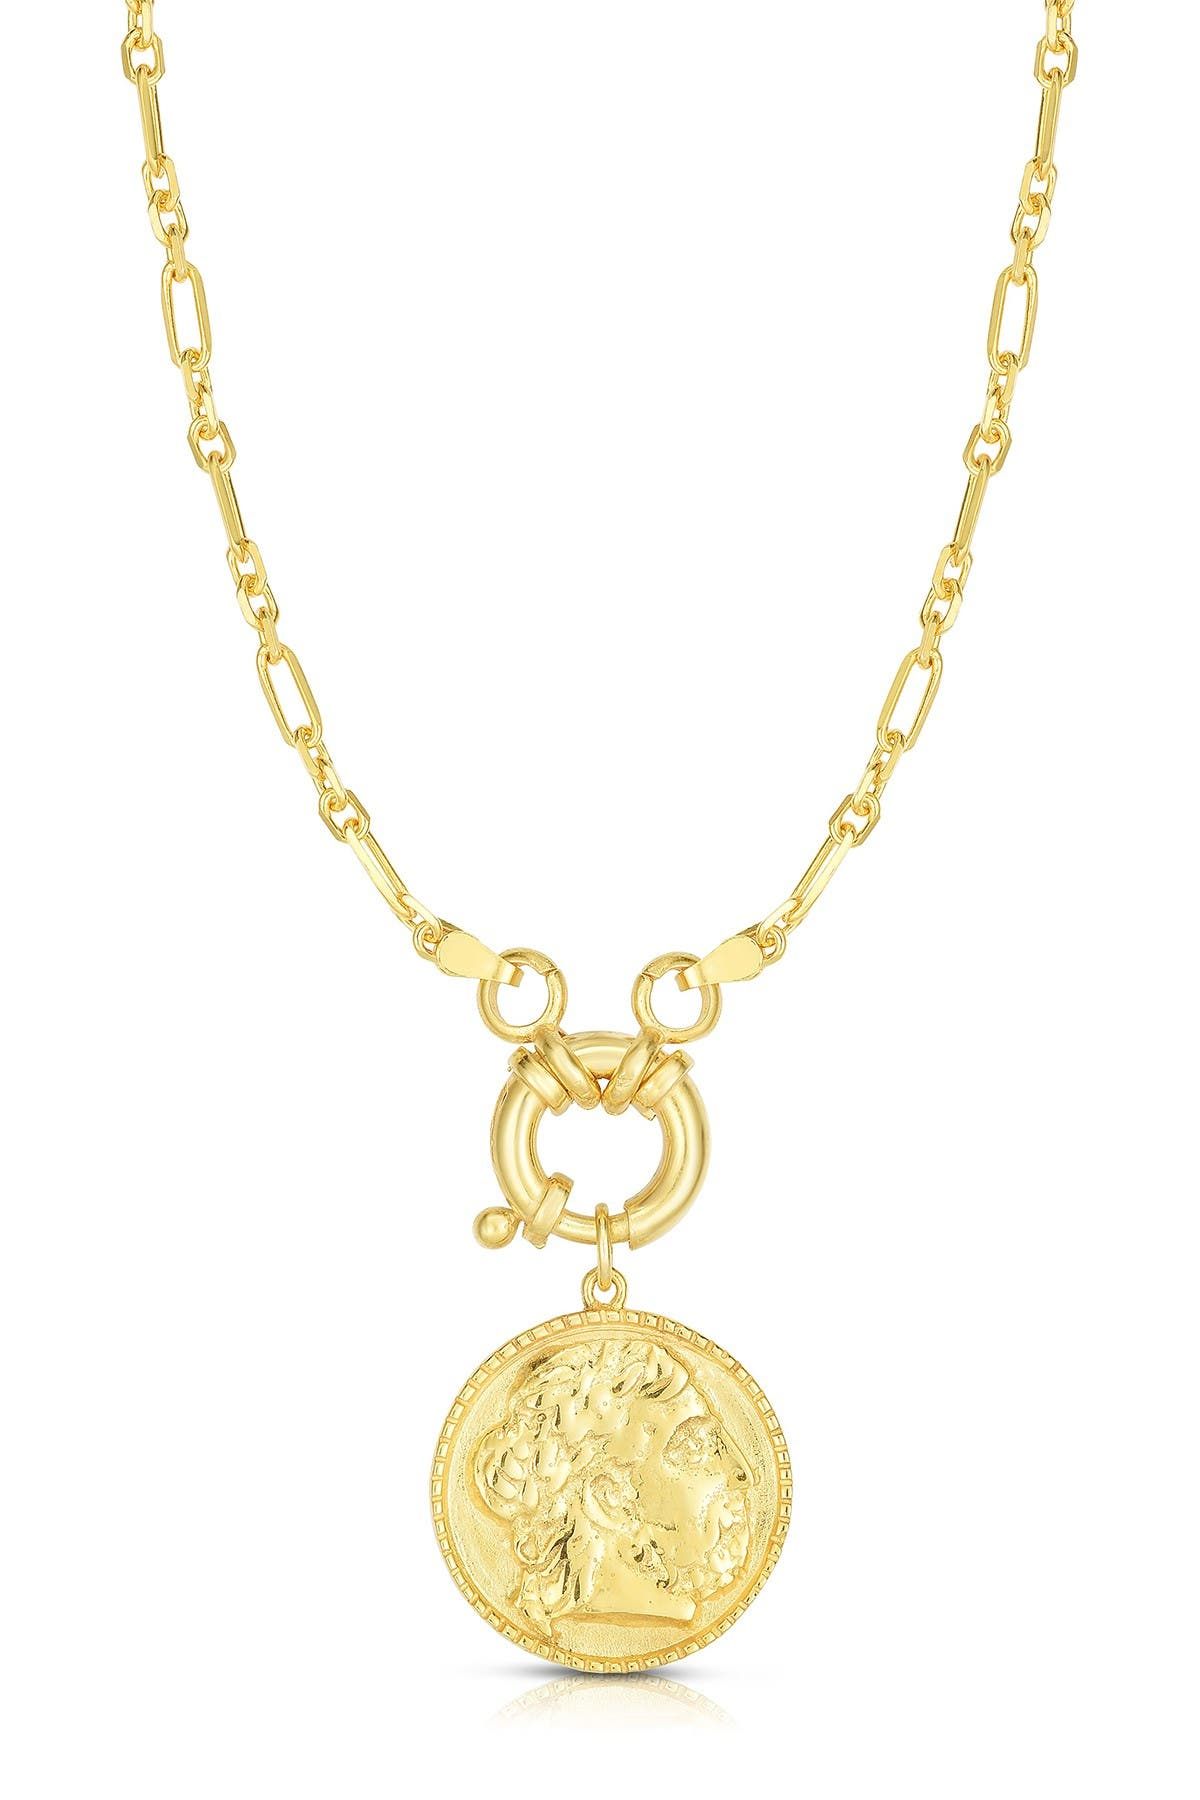 Image of Sphera Milano 18K Gold Plated Sterling Silver Coin Pendant Necklace